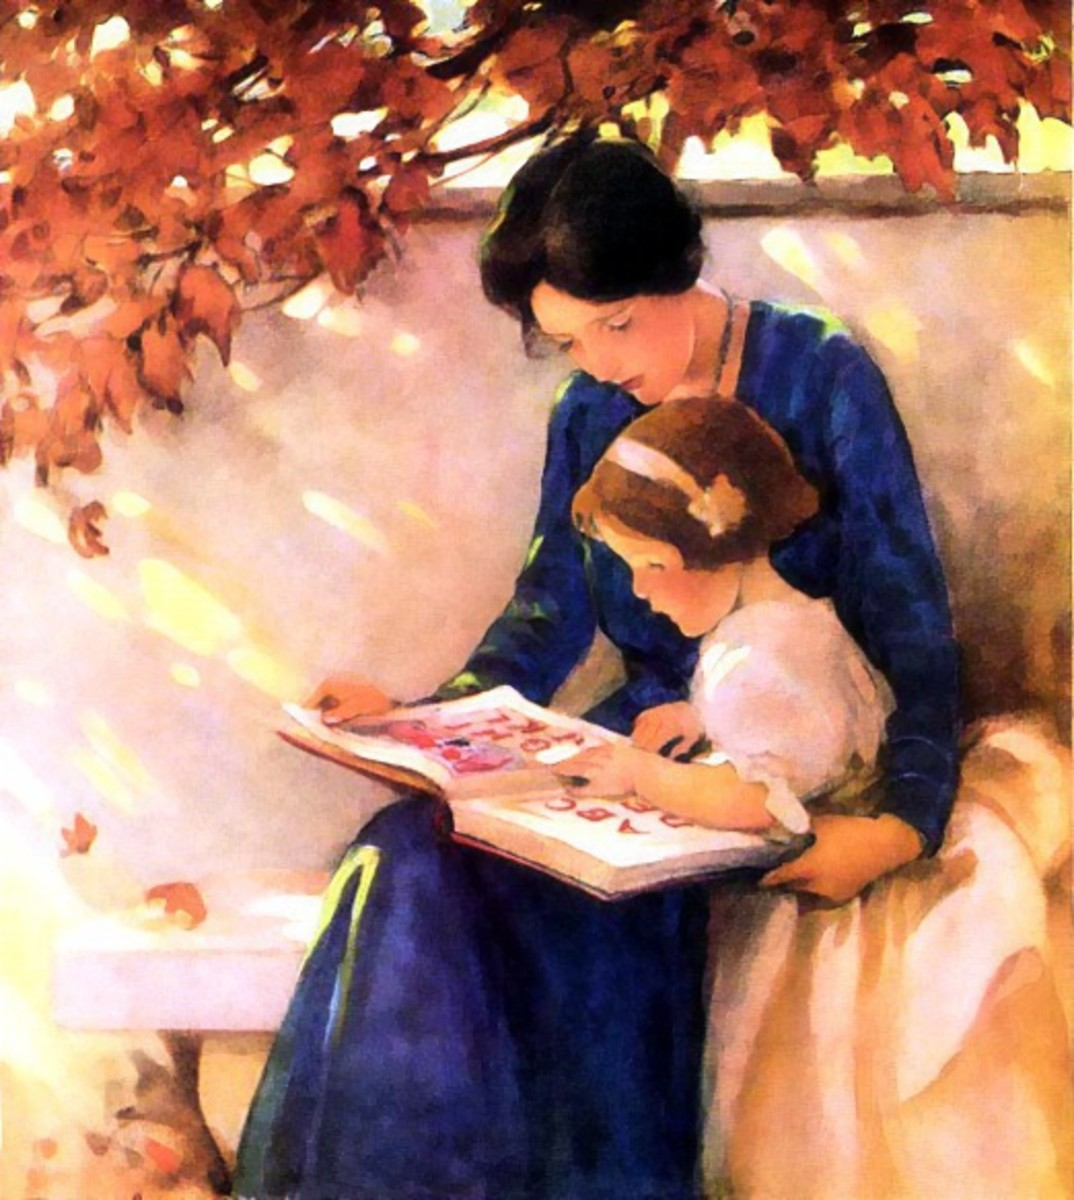 A painting of a mother reading a story book to her child.